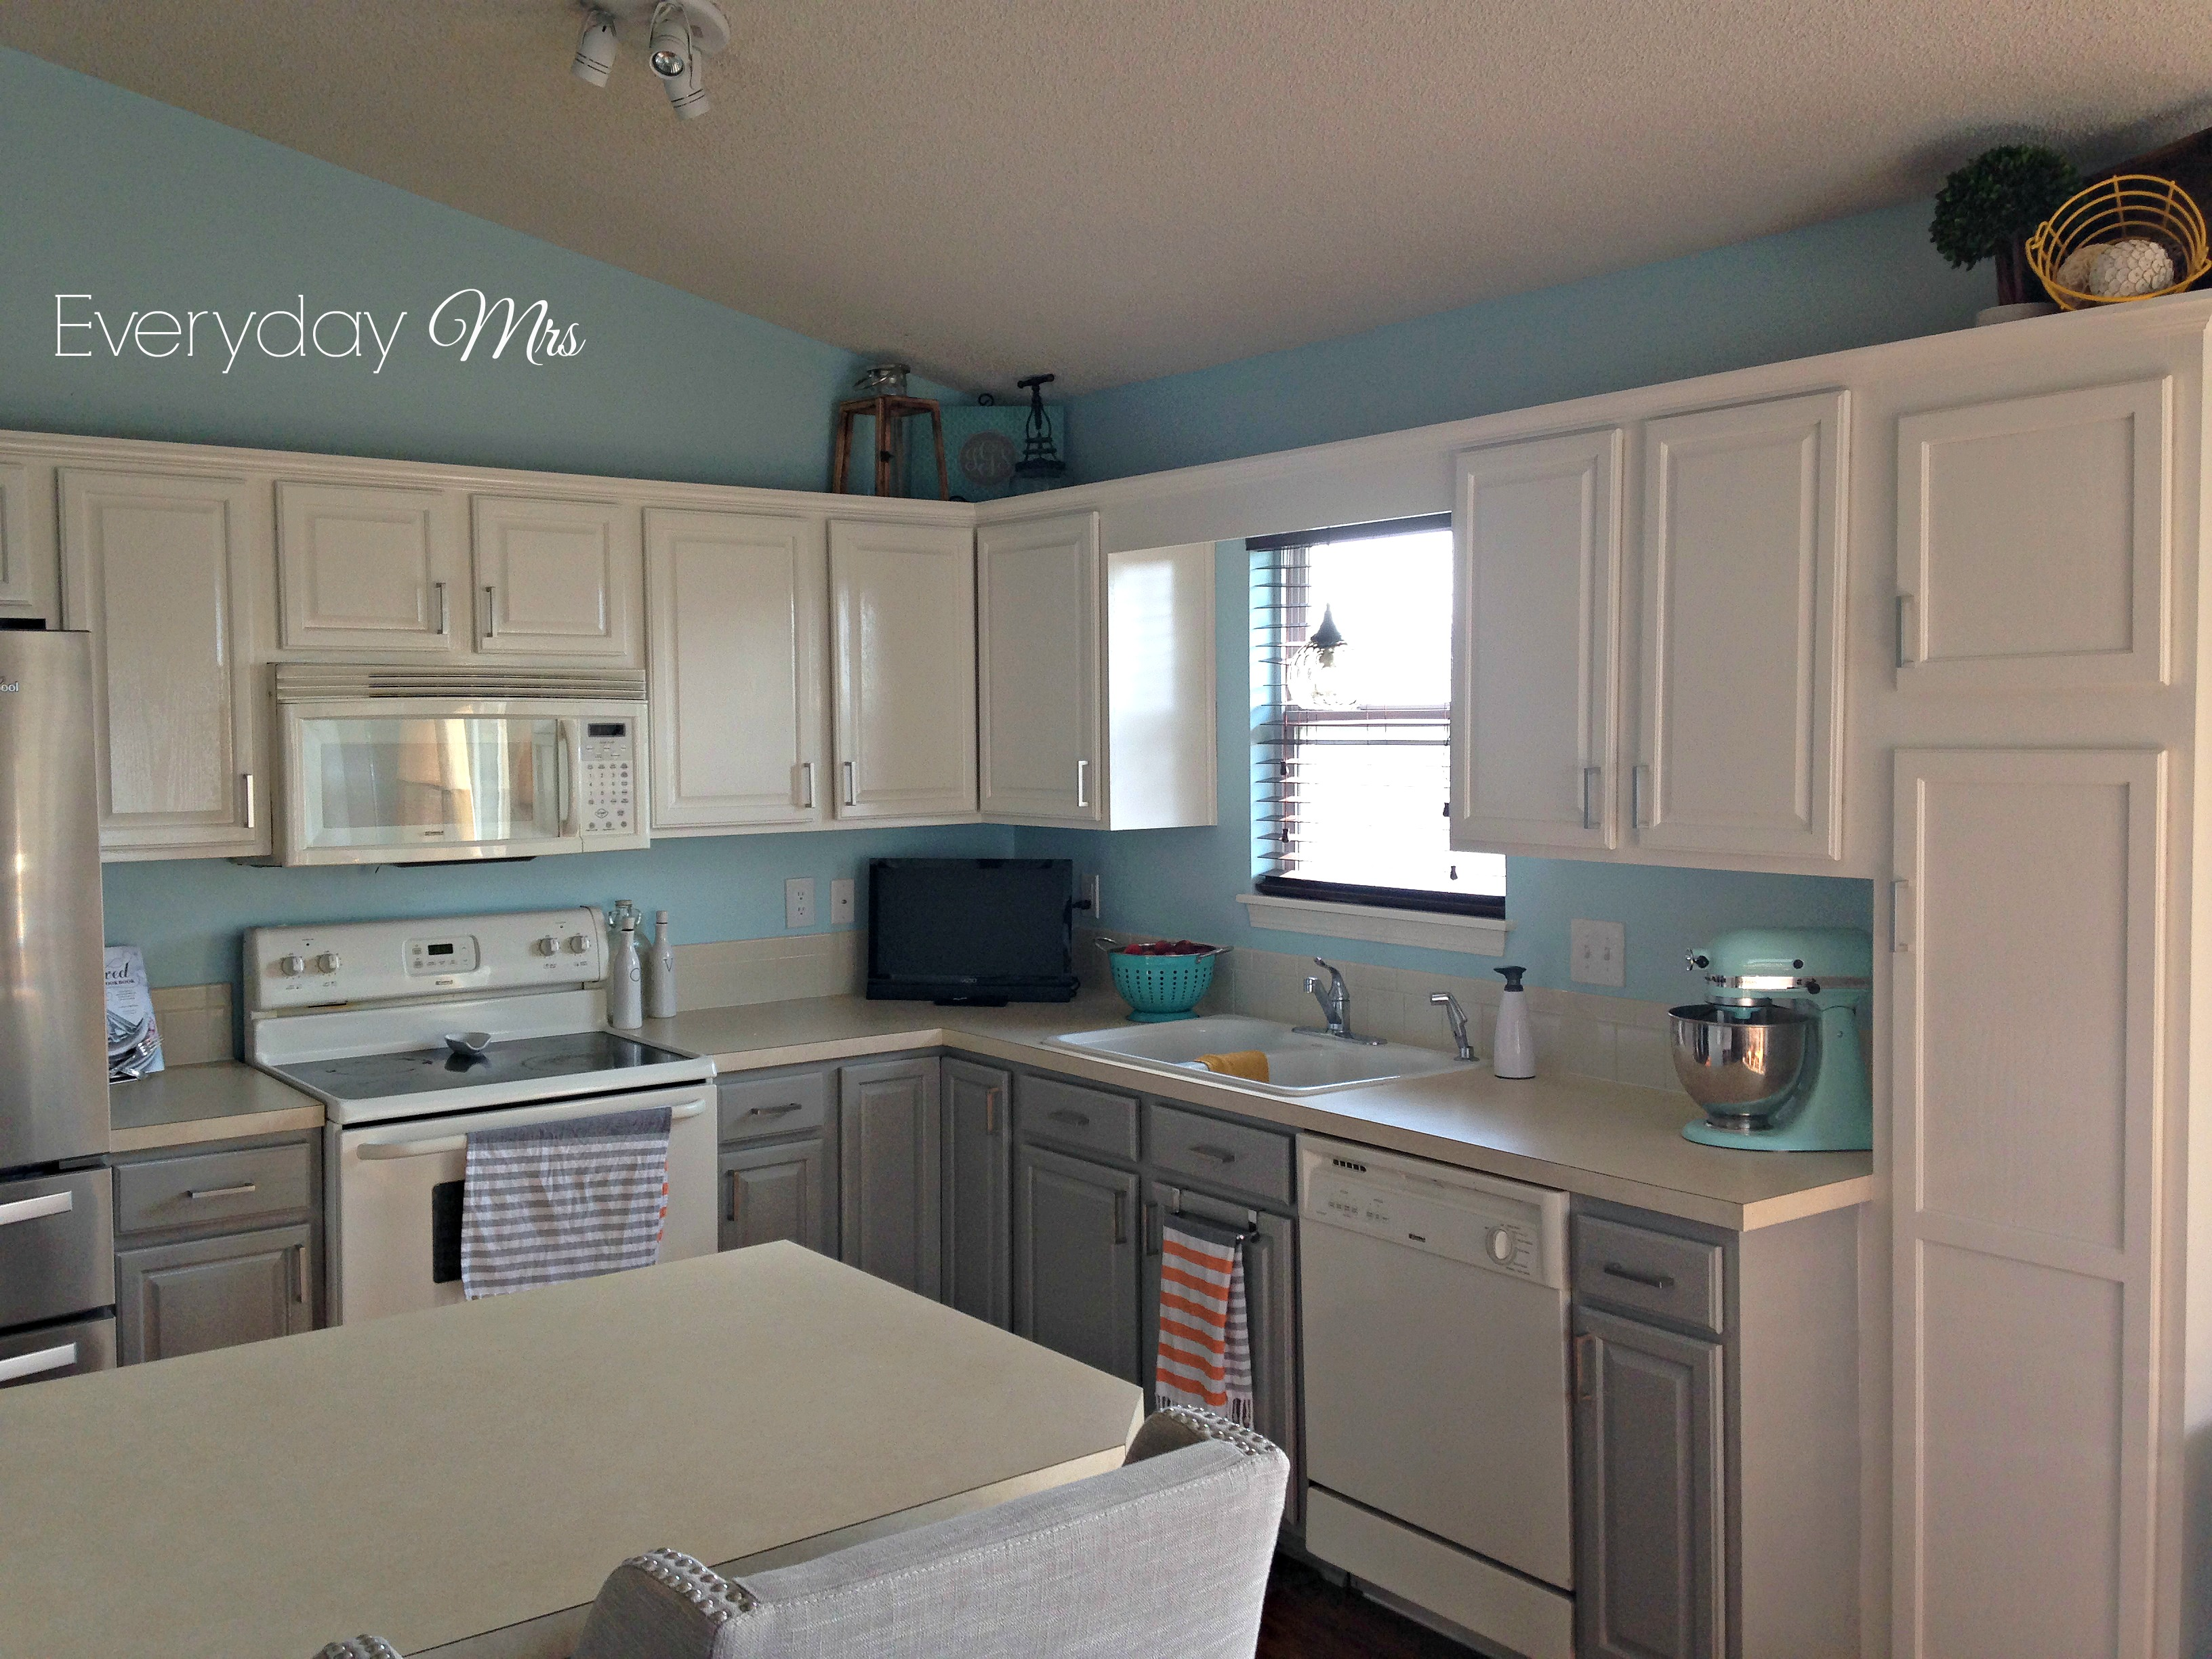 Grey Kitchen Cabinets And White Appliances Kitchen Appliances Tips - Grey kitchen cabinets with white appliances